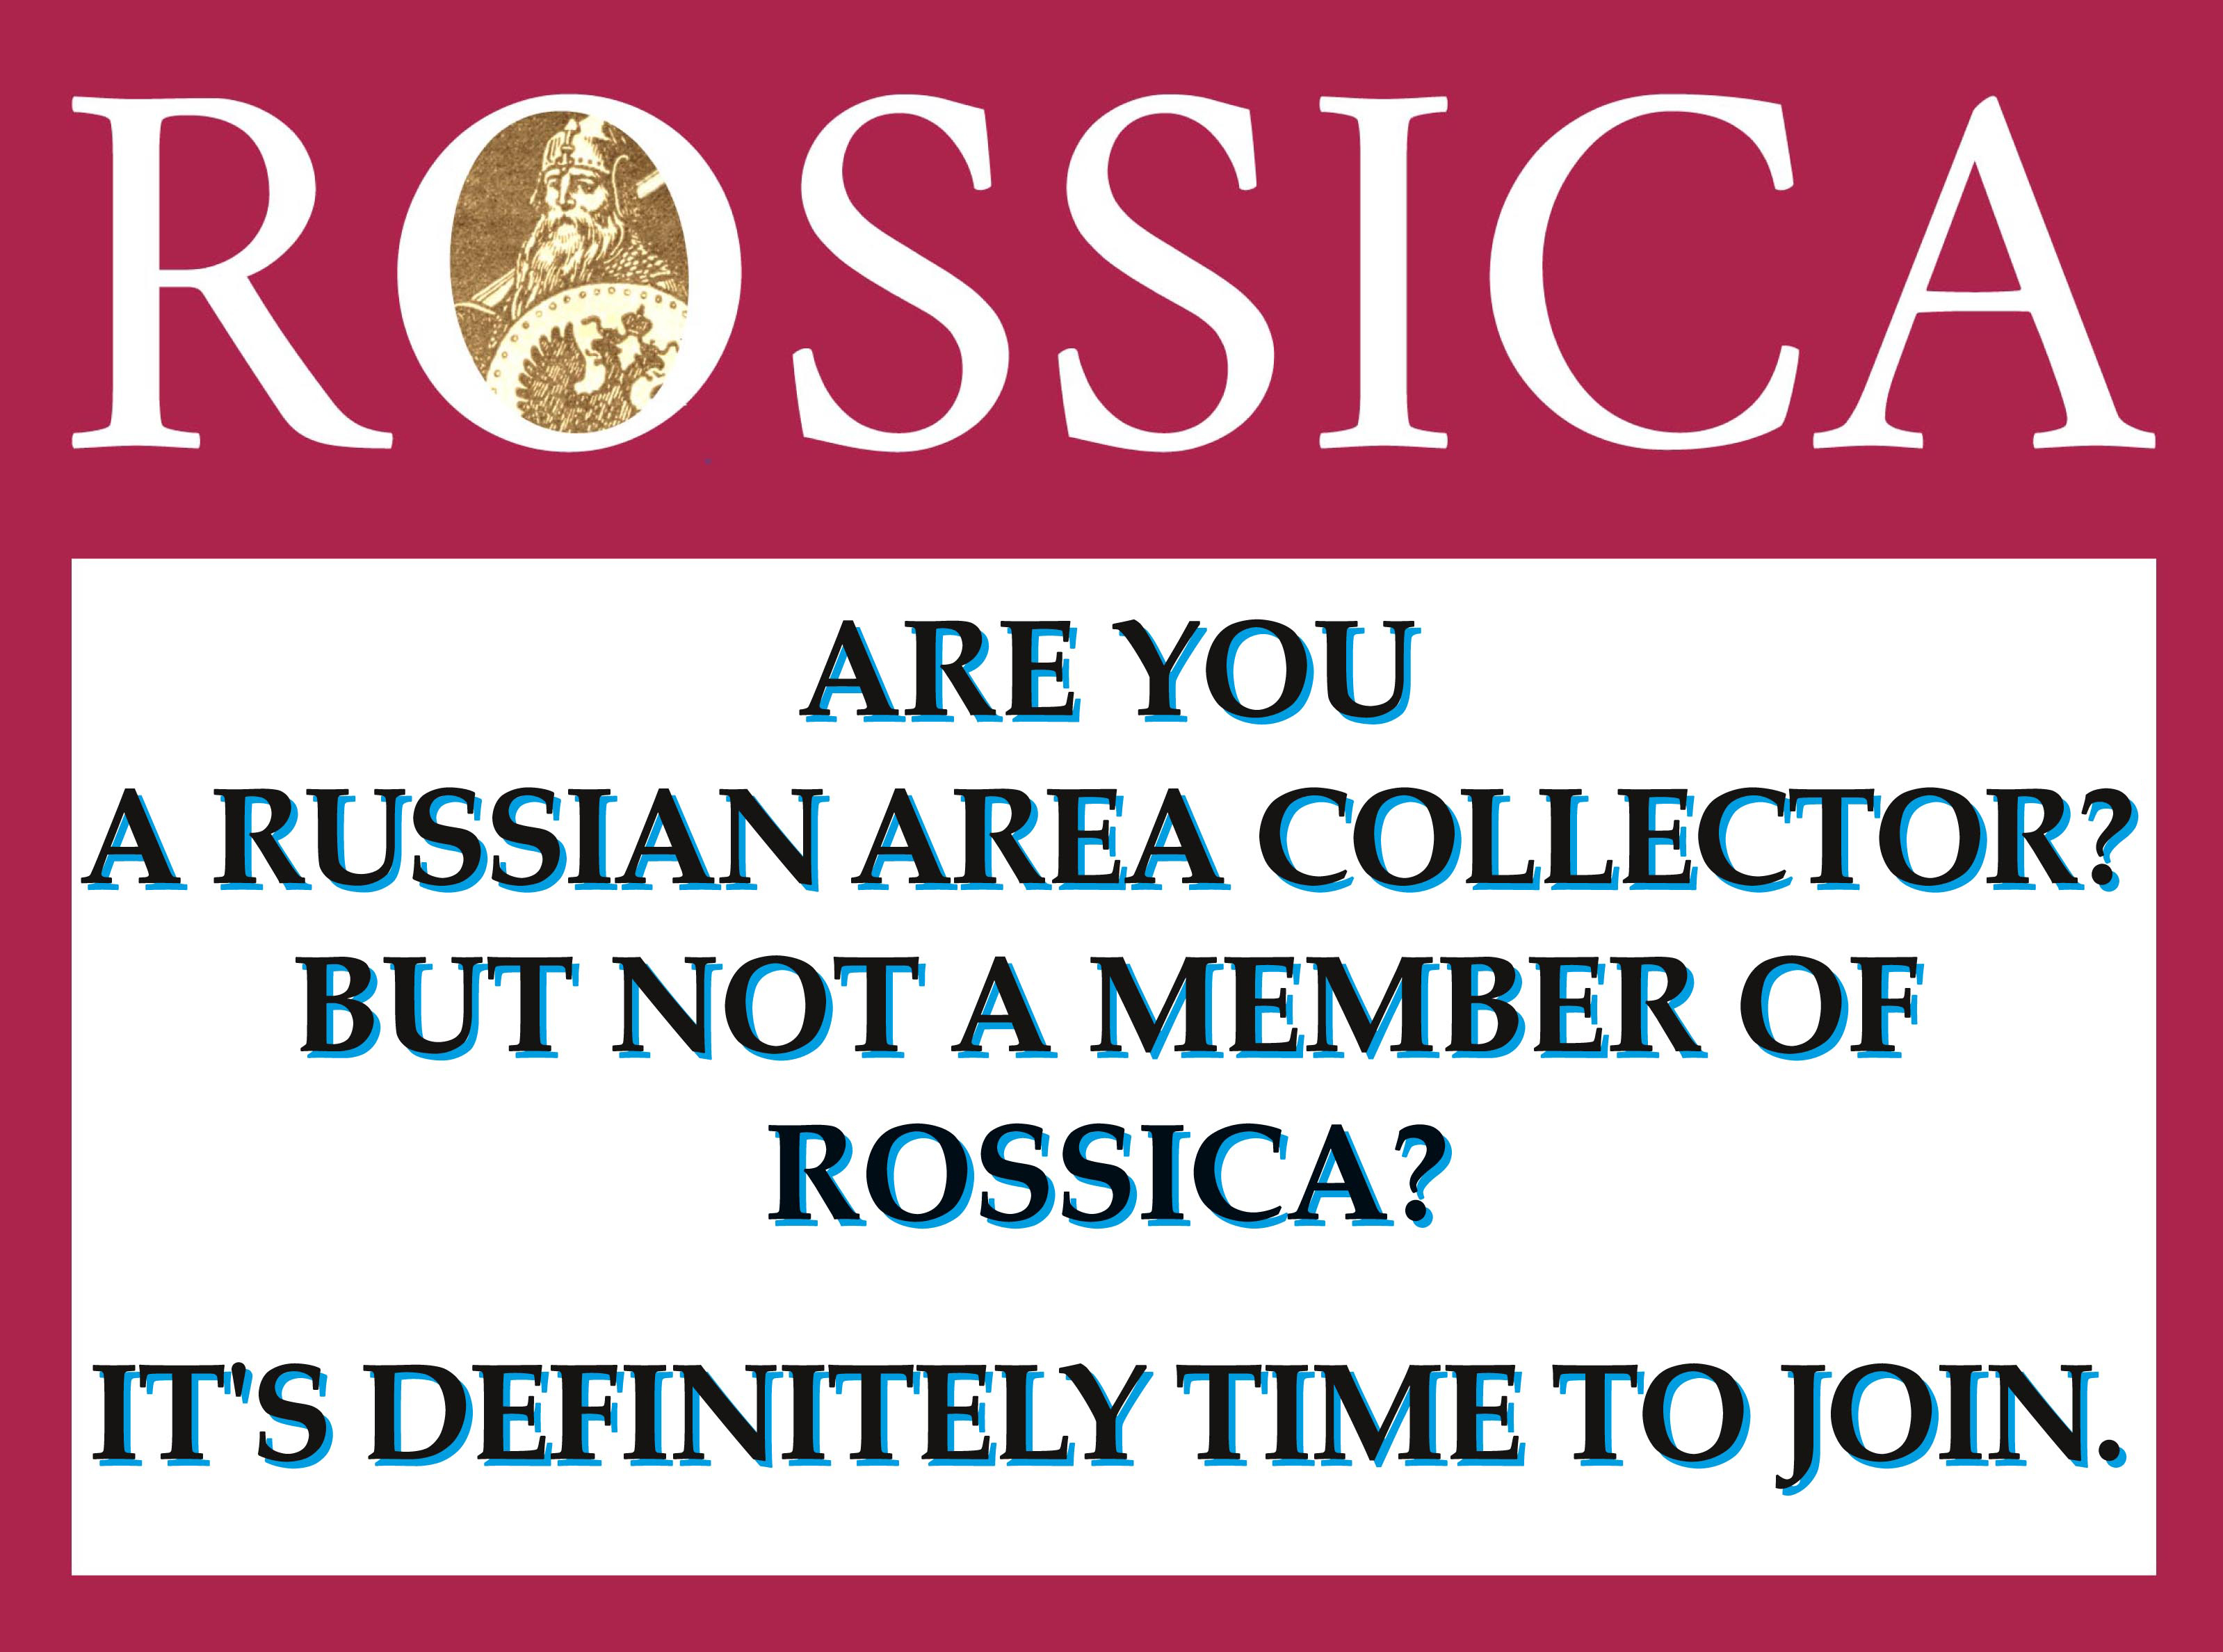 Rossica Society Journal - Know More about Russian Philately!